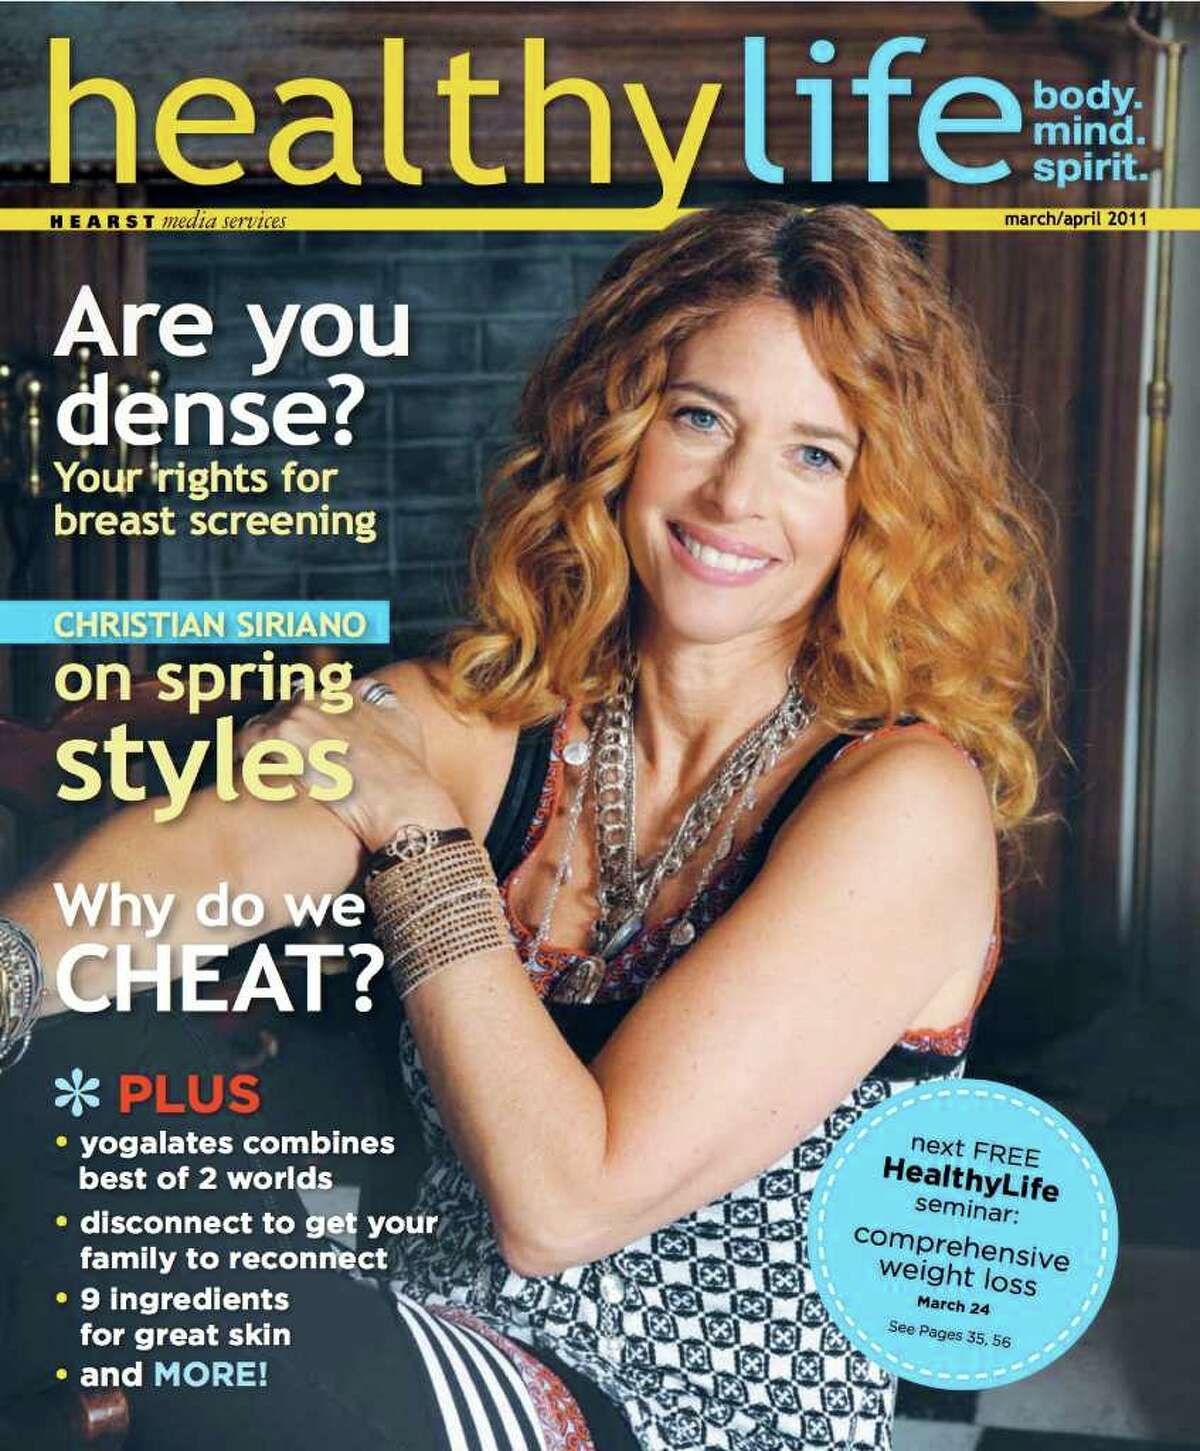 Check out this slideshow of behind the scenes photographs from HealthyLife's cover shoot and read the magazine online here: Healthylifect.com